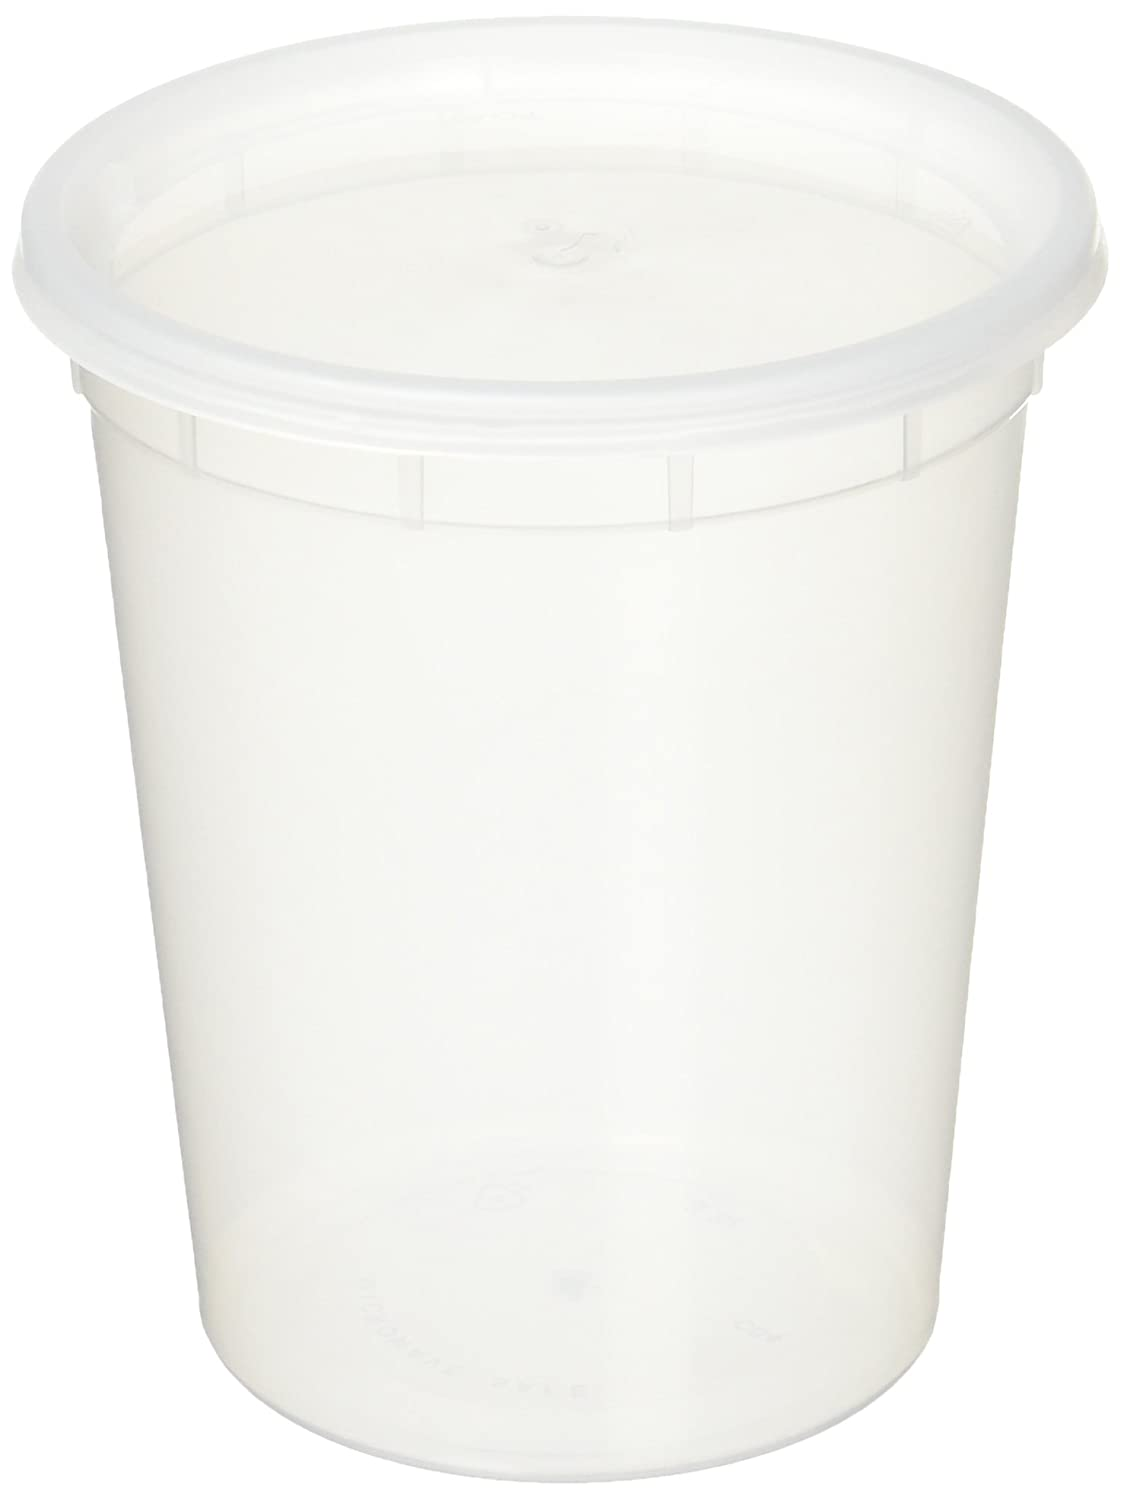 Reditainer Deli Food Storage Containers with Lid, 32-Ounce, 24-Pack RTRR2432